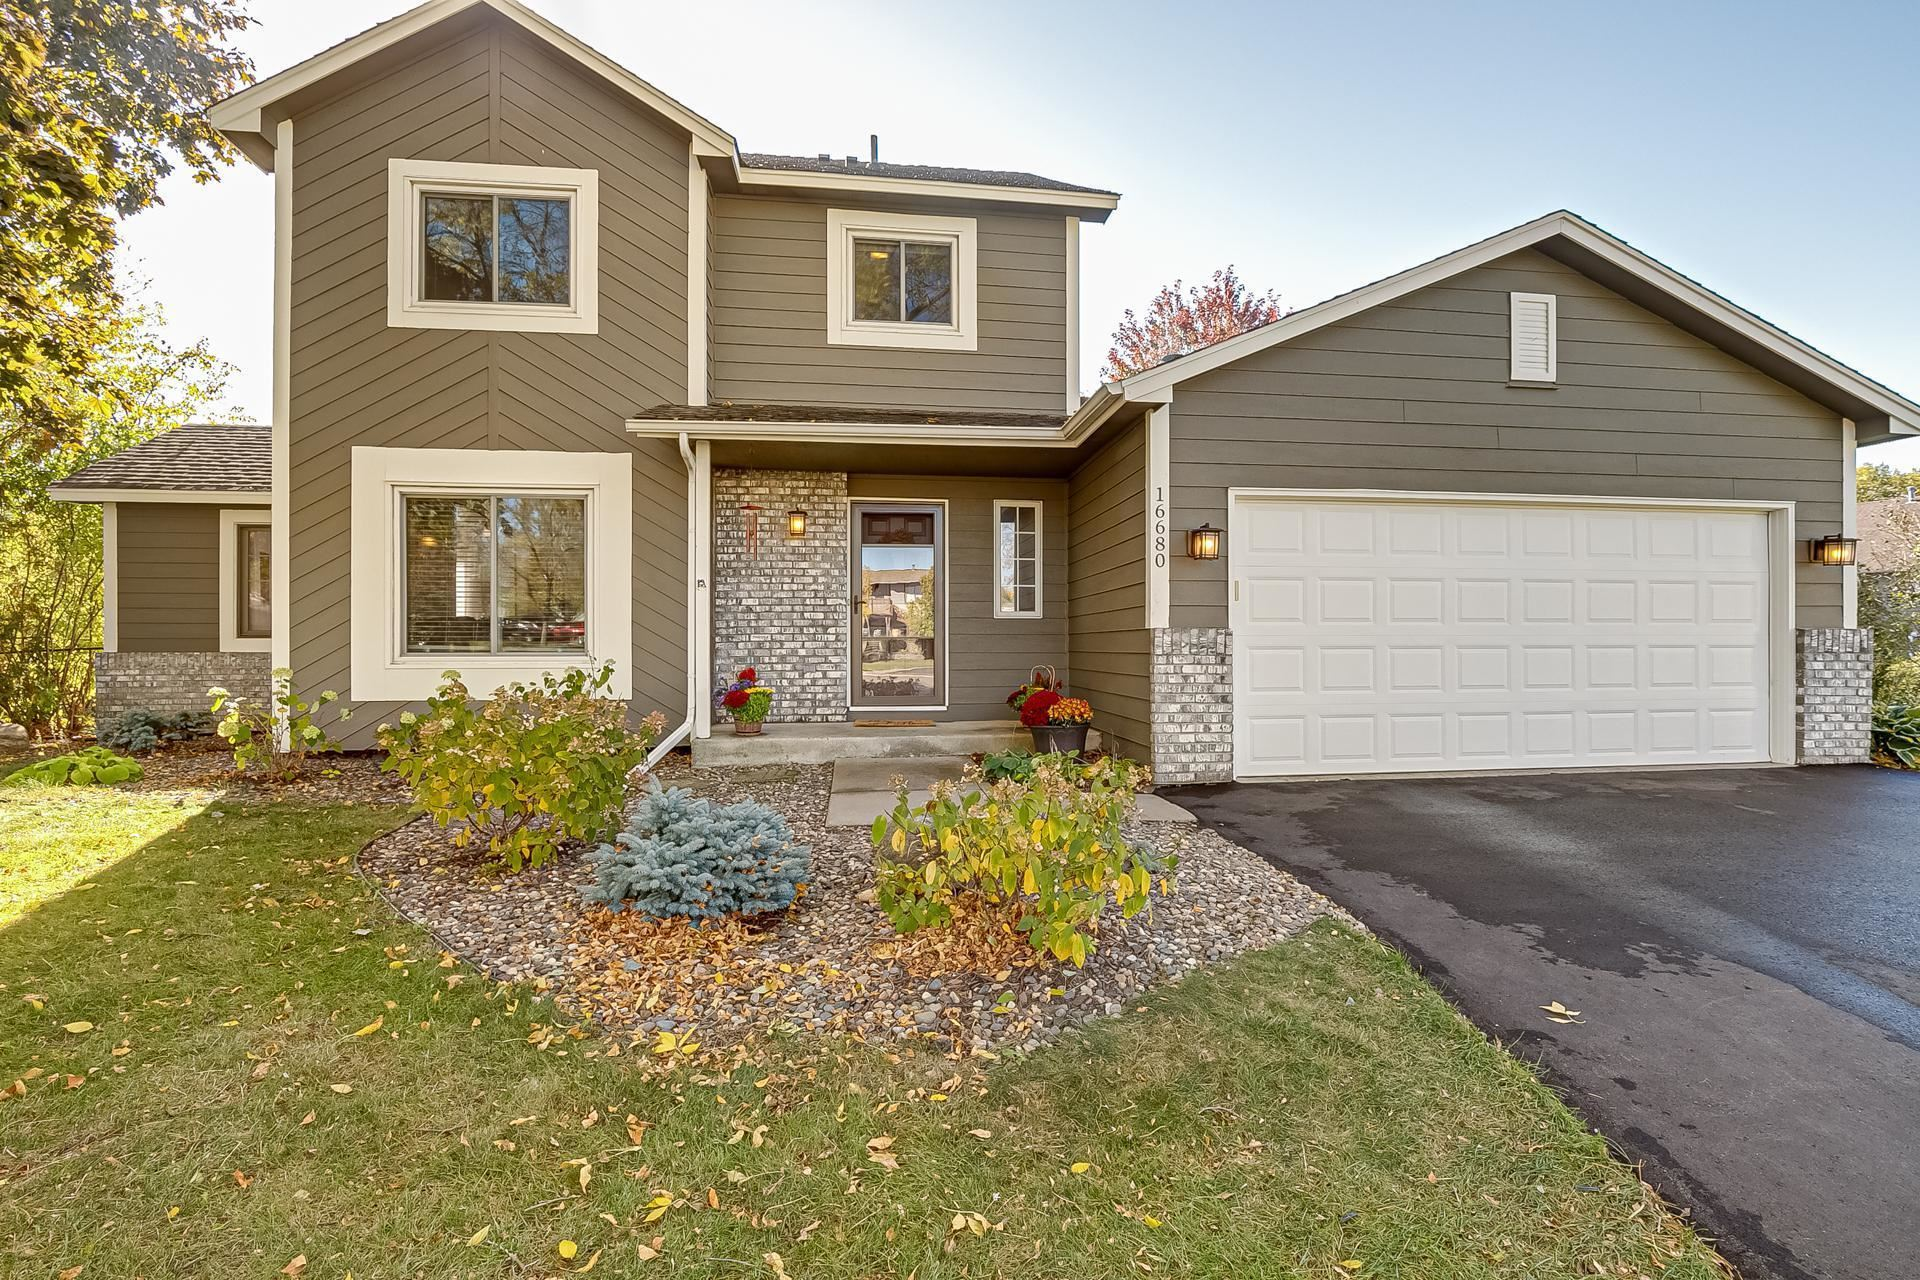 Photo of 16680 Jersey Court, Lakeville, MN 55044 (MLS # 6113865)